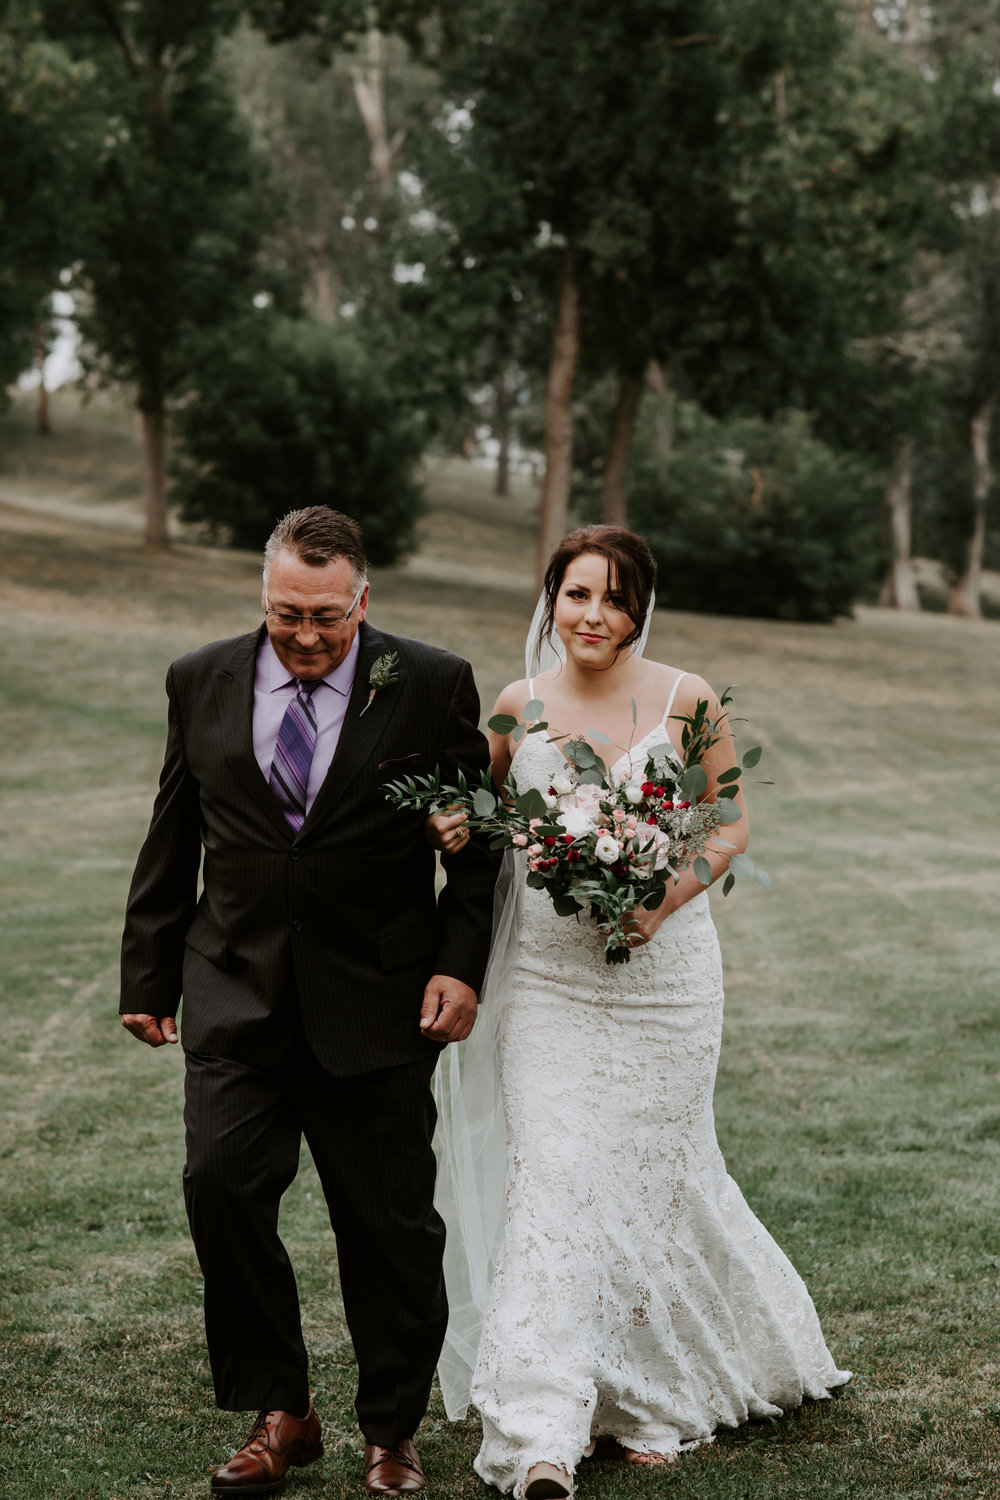 Calgary Wedding Photographer - 22 of 84.jpg